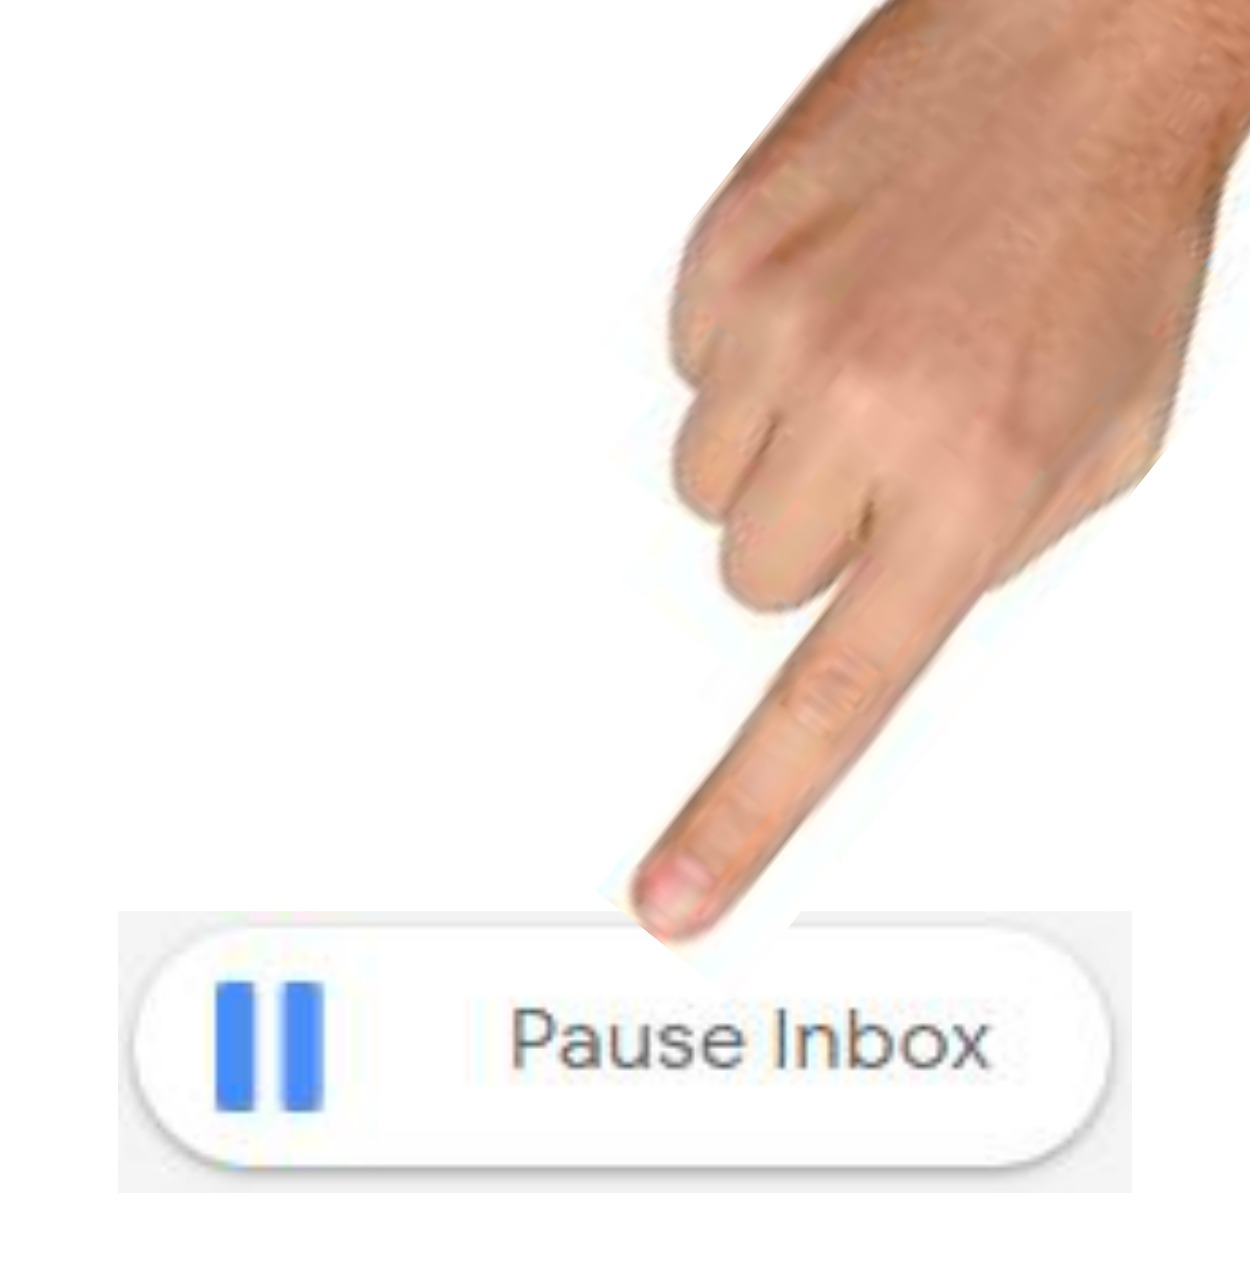 finger pointing at pause inbox button